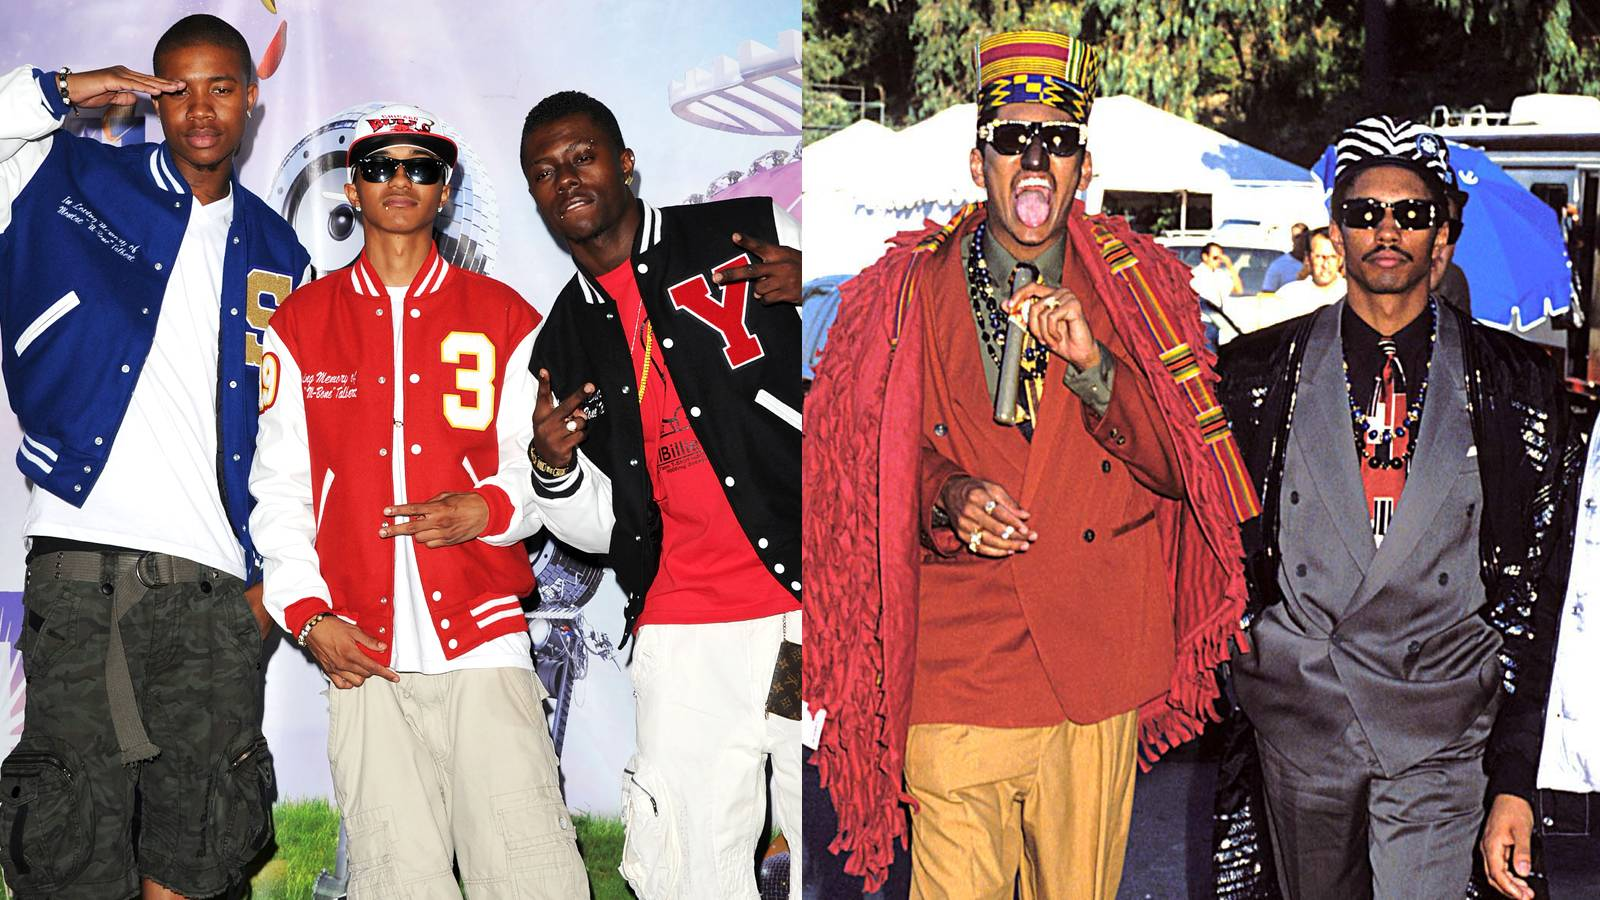 Cali Swag District & Digital Underground - It's 2012 and Cali Swag District is poppin', but they must realize that without the hot music and moves of Digital Underground.(Photos: Jason Merritt/Getty Images; Jeff Kravitz/FilmMagic, Inc/Getty Images)